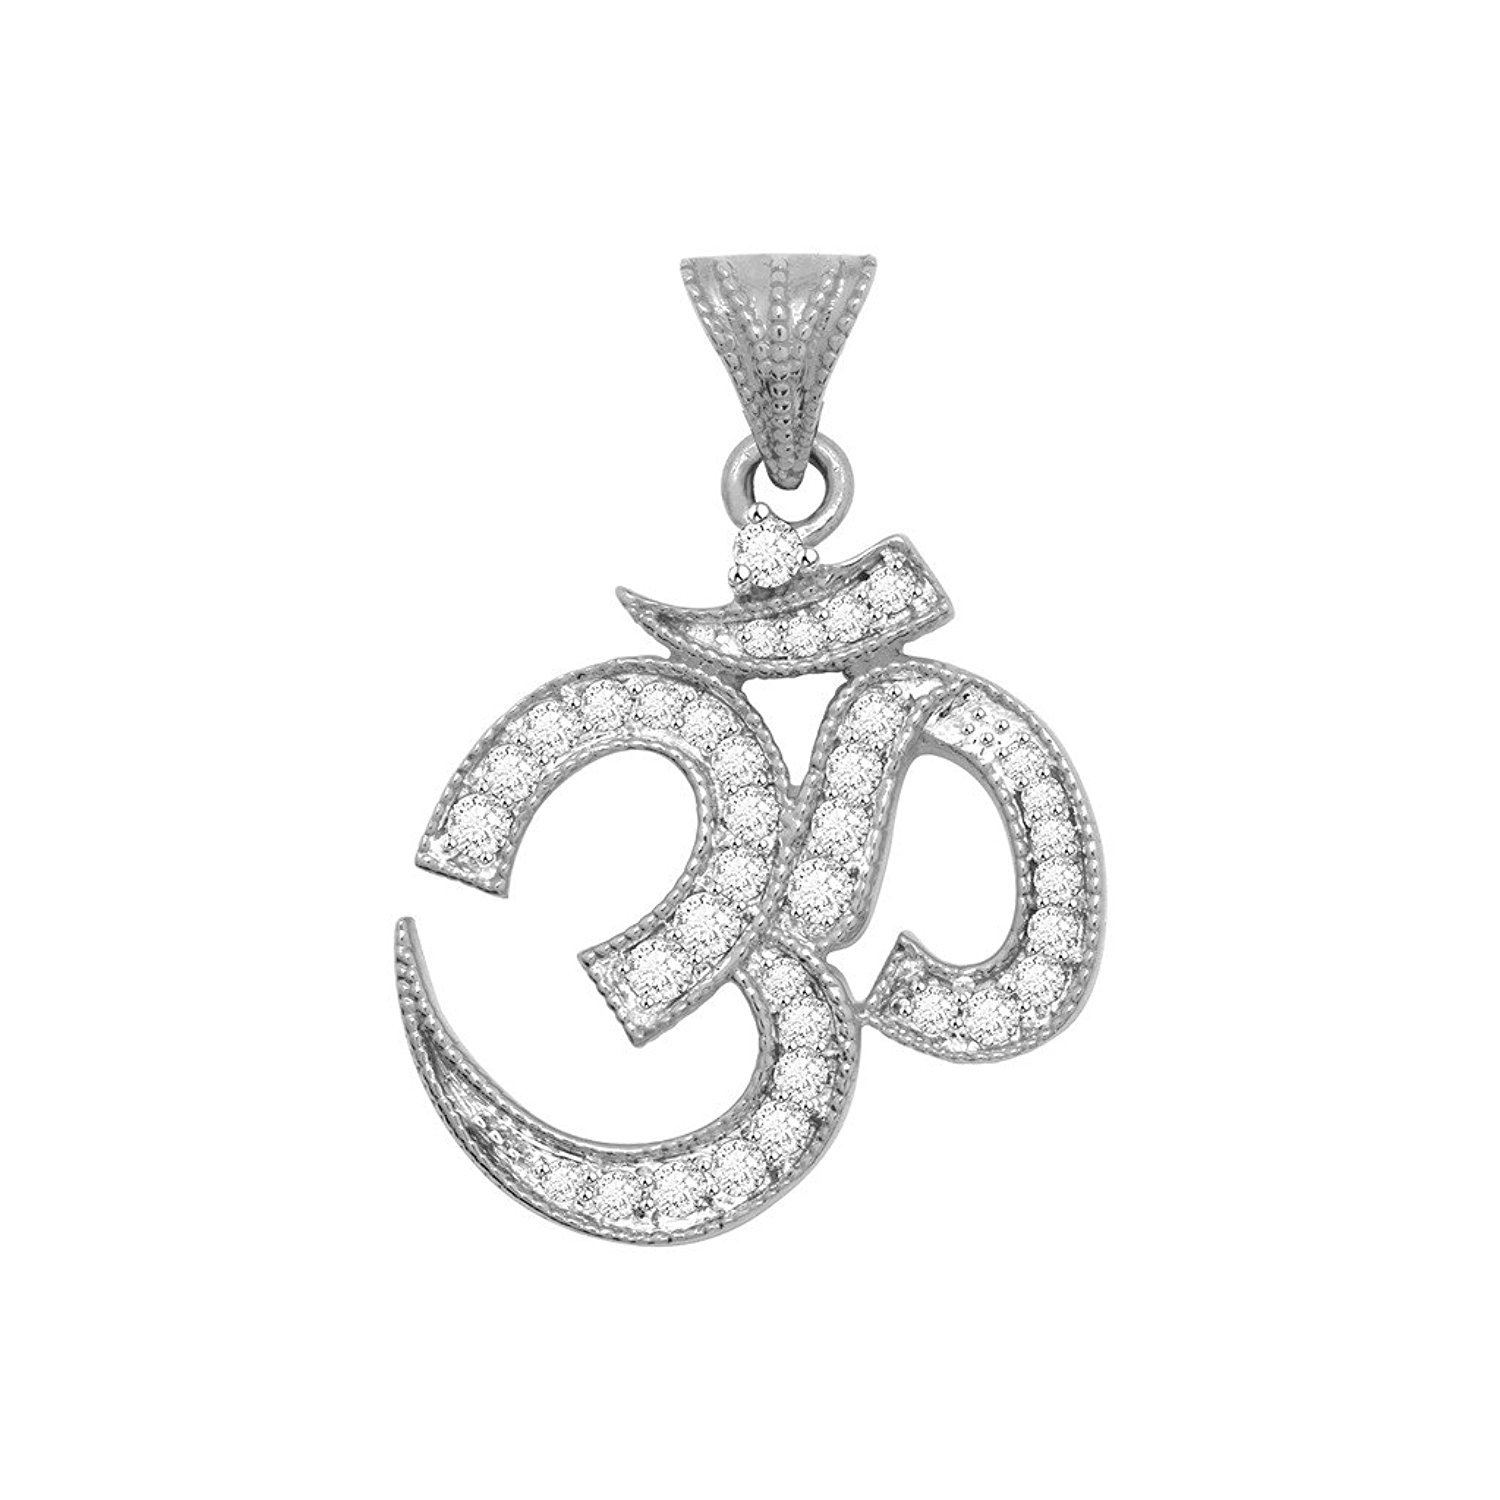 Simulated Diamond Studded Elegant Fashion Charm Pendant Necklace in 14K White Gold Plated With Box Chain